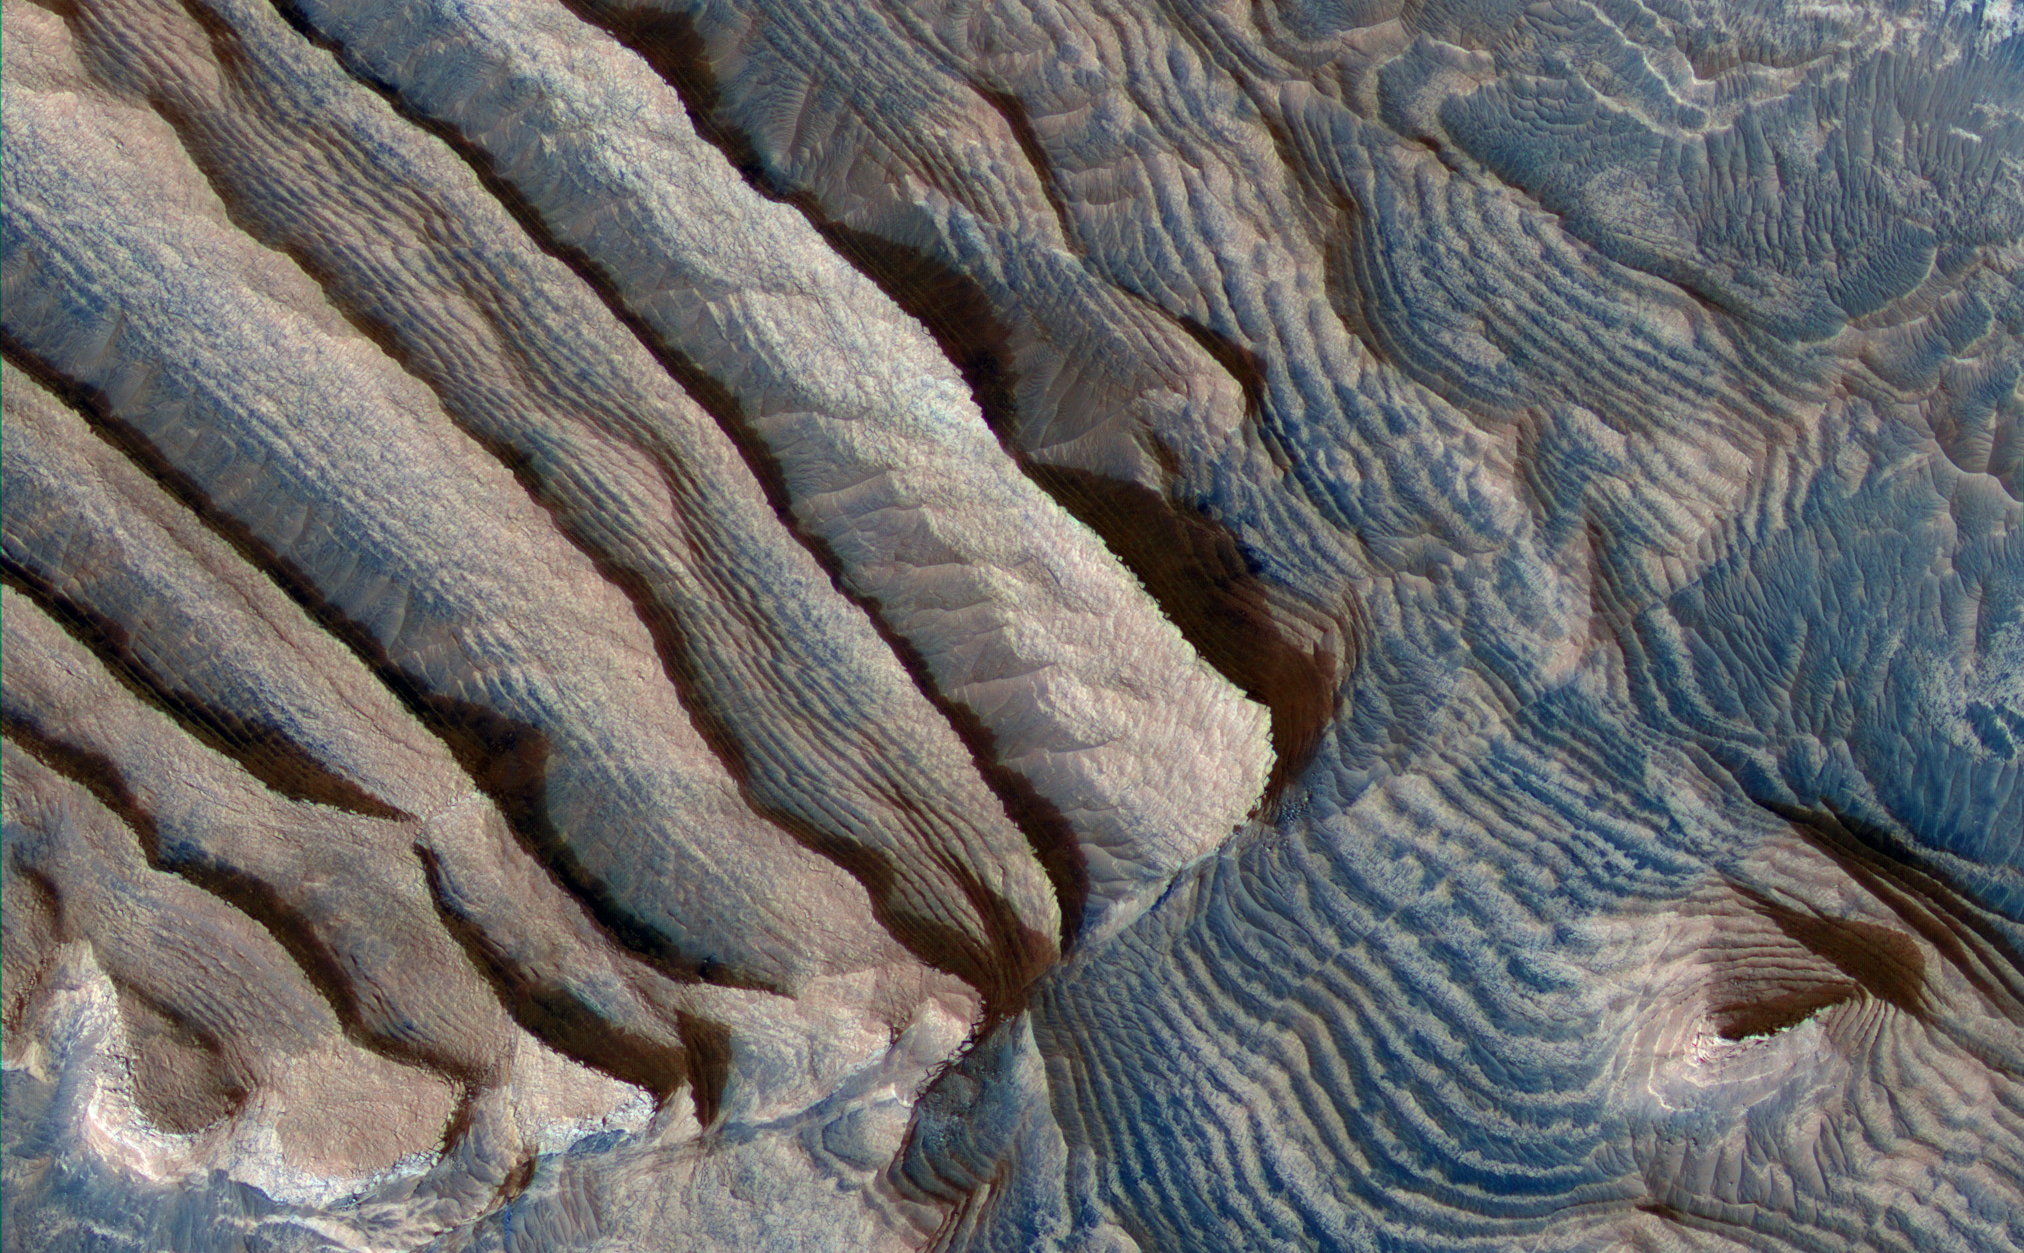 Periodic Layering in Martian Sedimentary Rocks